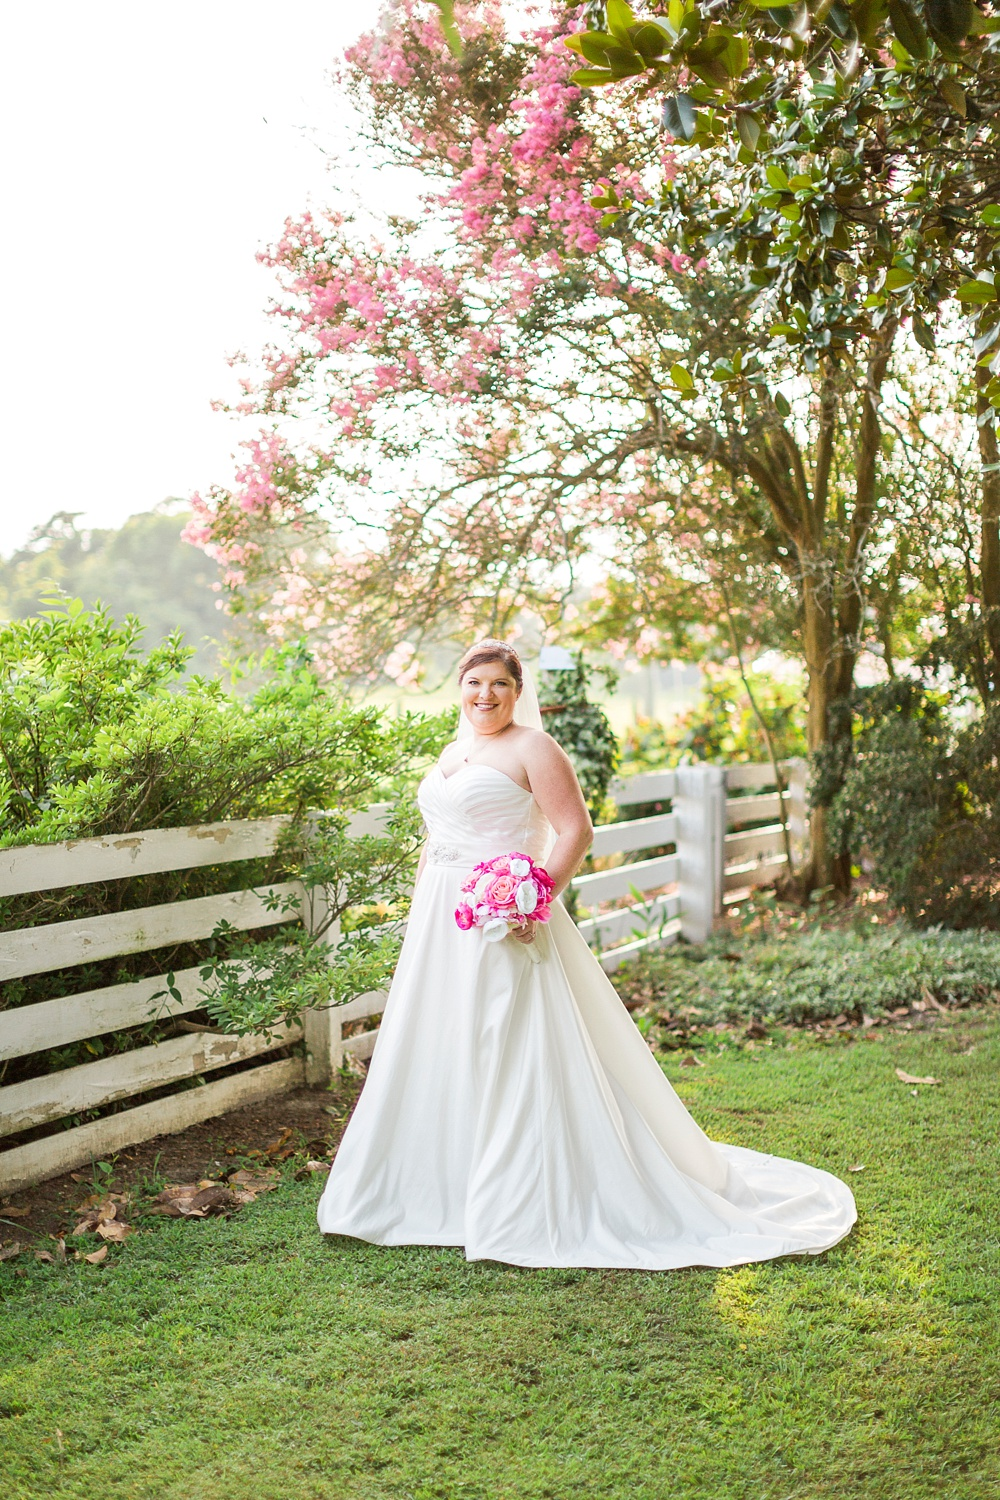 bridal portrait under a blooming pink crepe myrtle tree